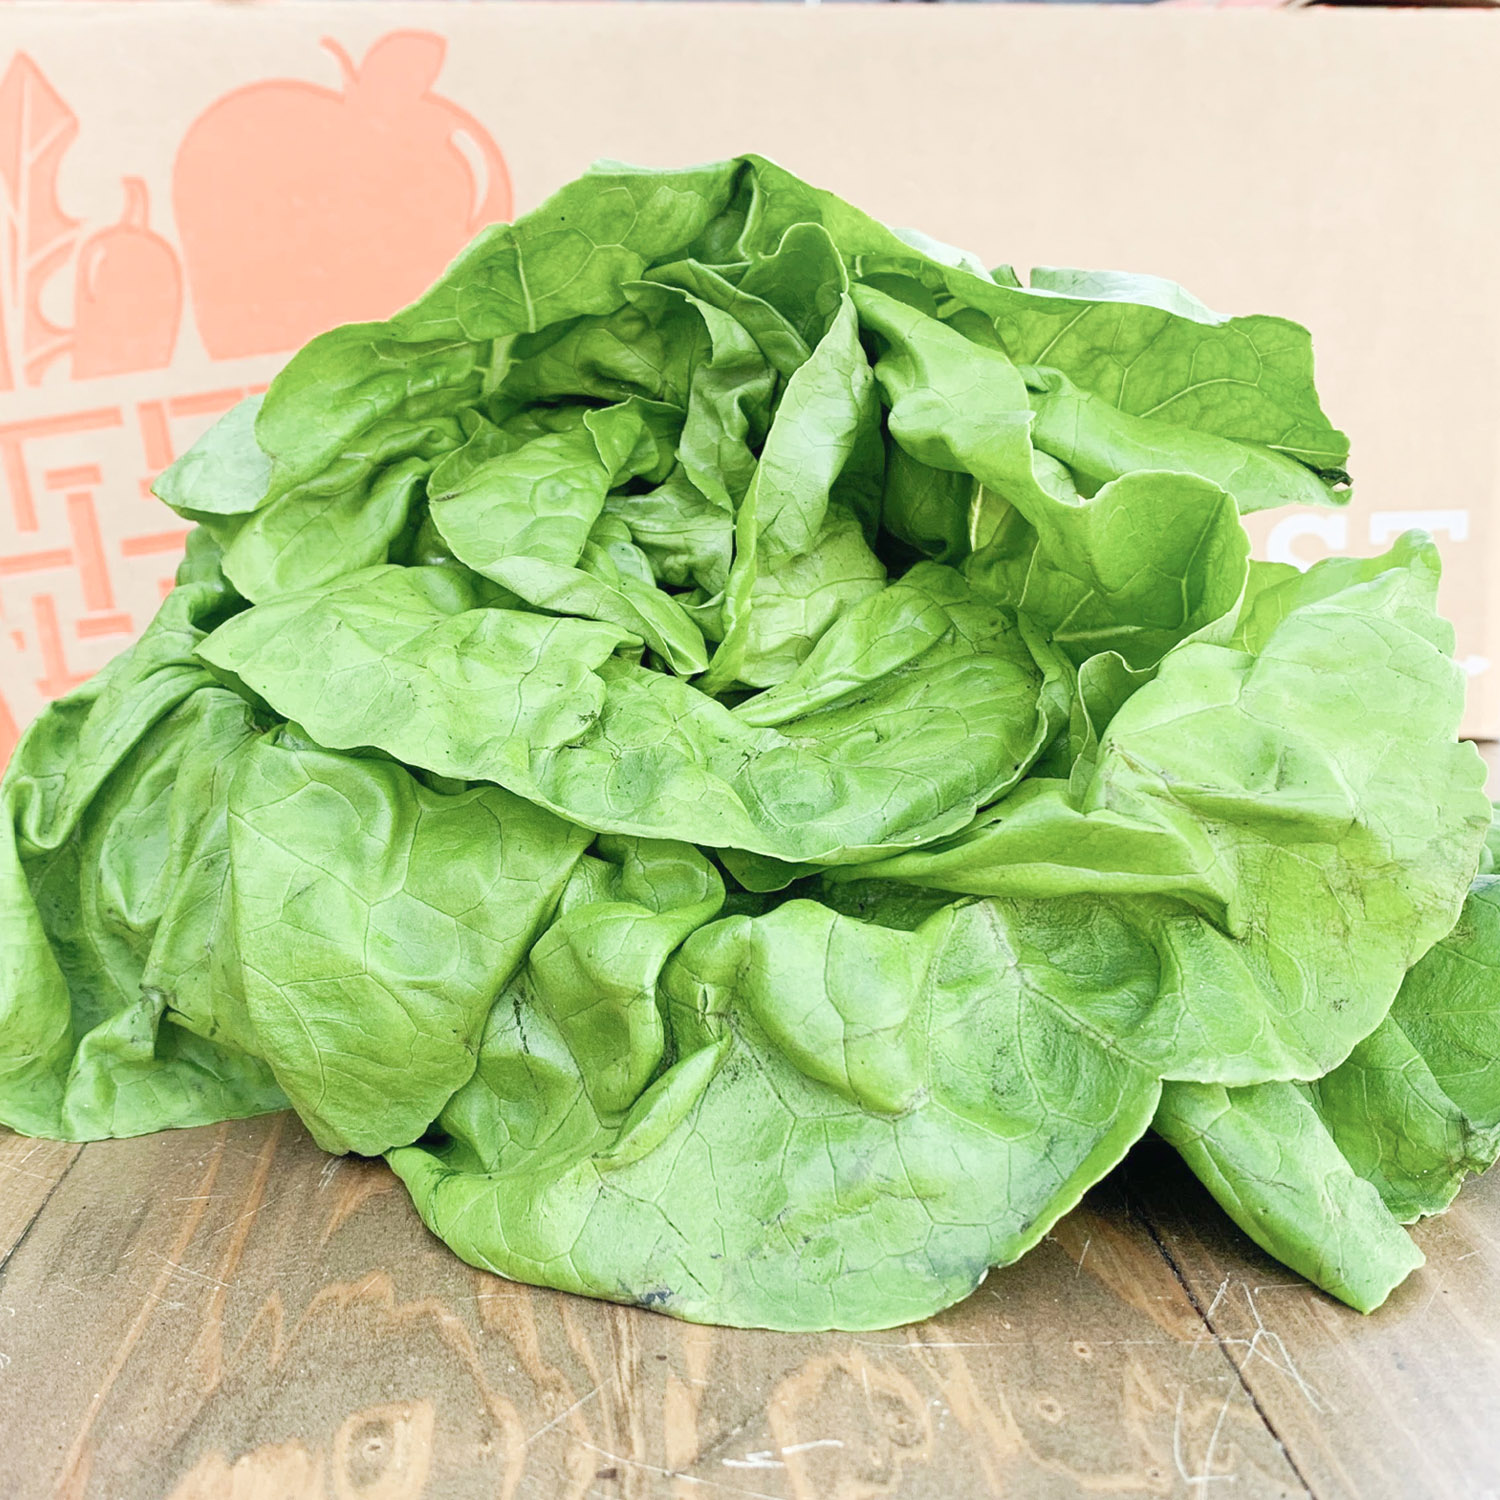 Simple Butter Lettuce SaladSometimes simple is best - like the combination of these fresh and salty flavors. - Find the recipe at: The Modern Proper